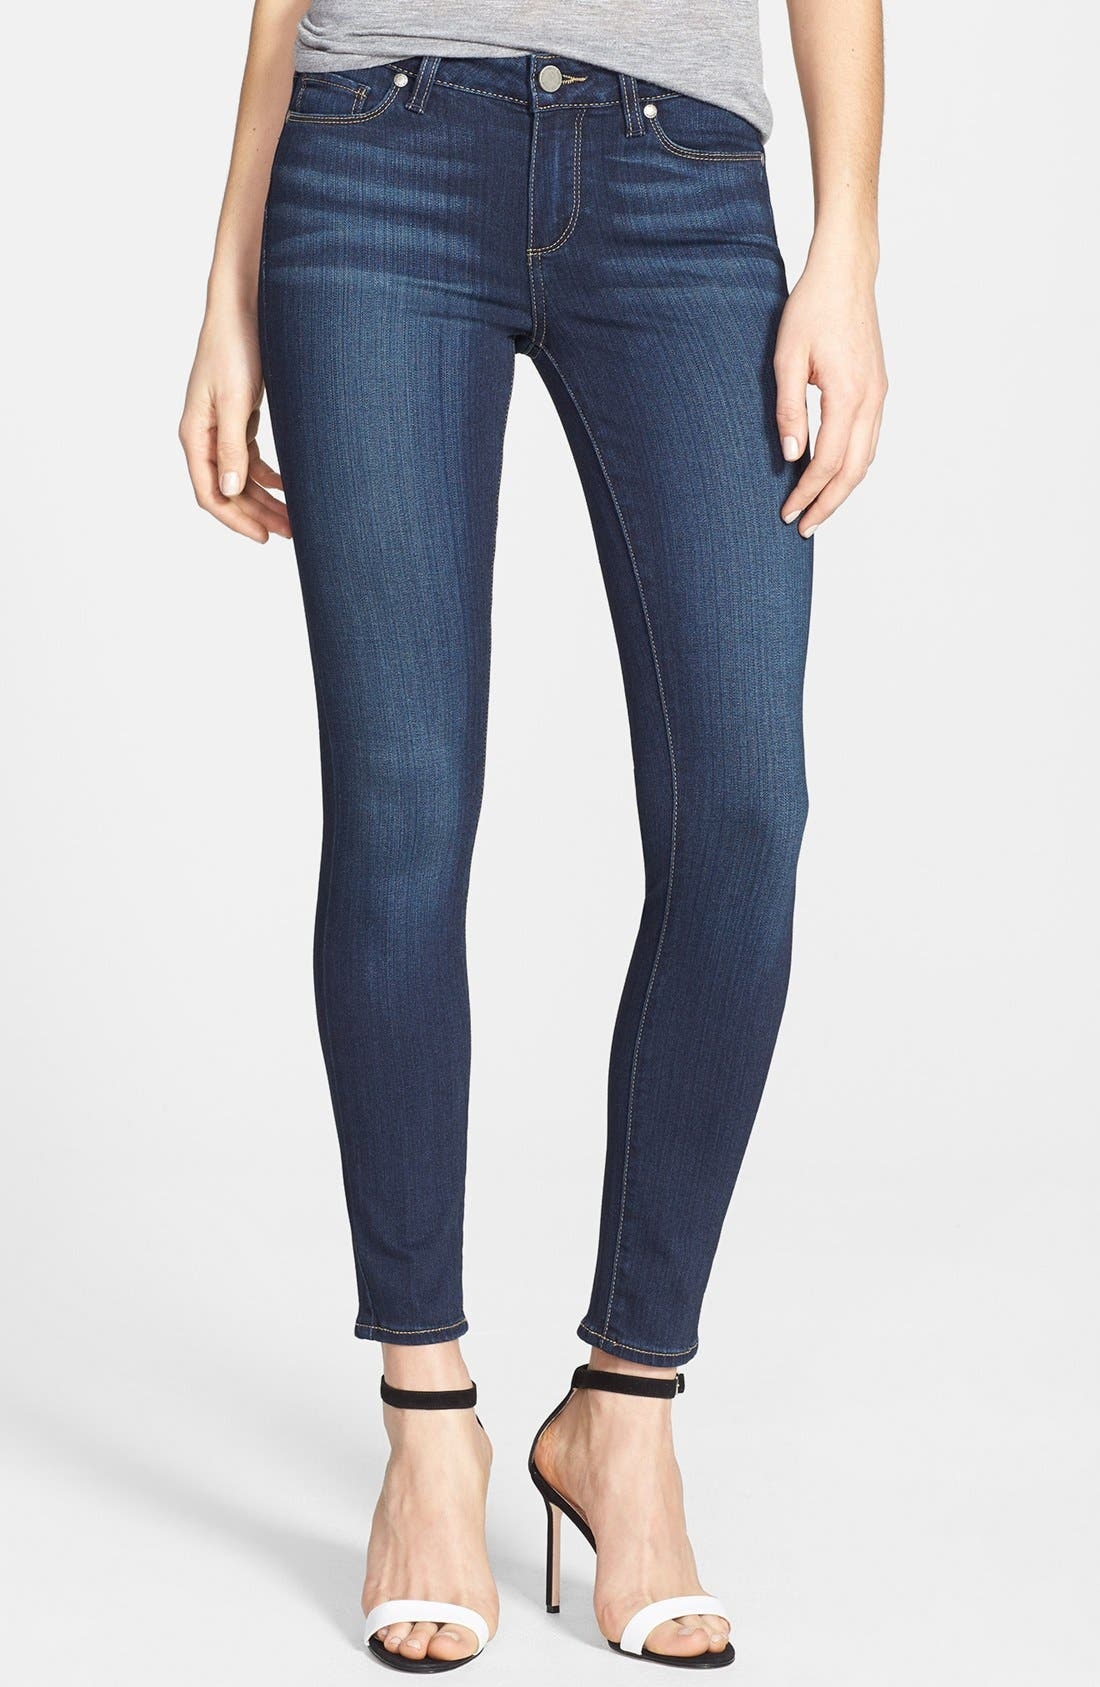 Transcend - Verdugo Ankle Skinny Jeans,                         Main,                         color, Nottingham